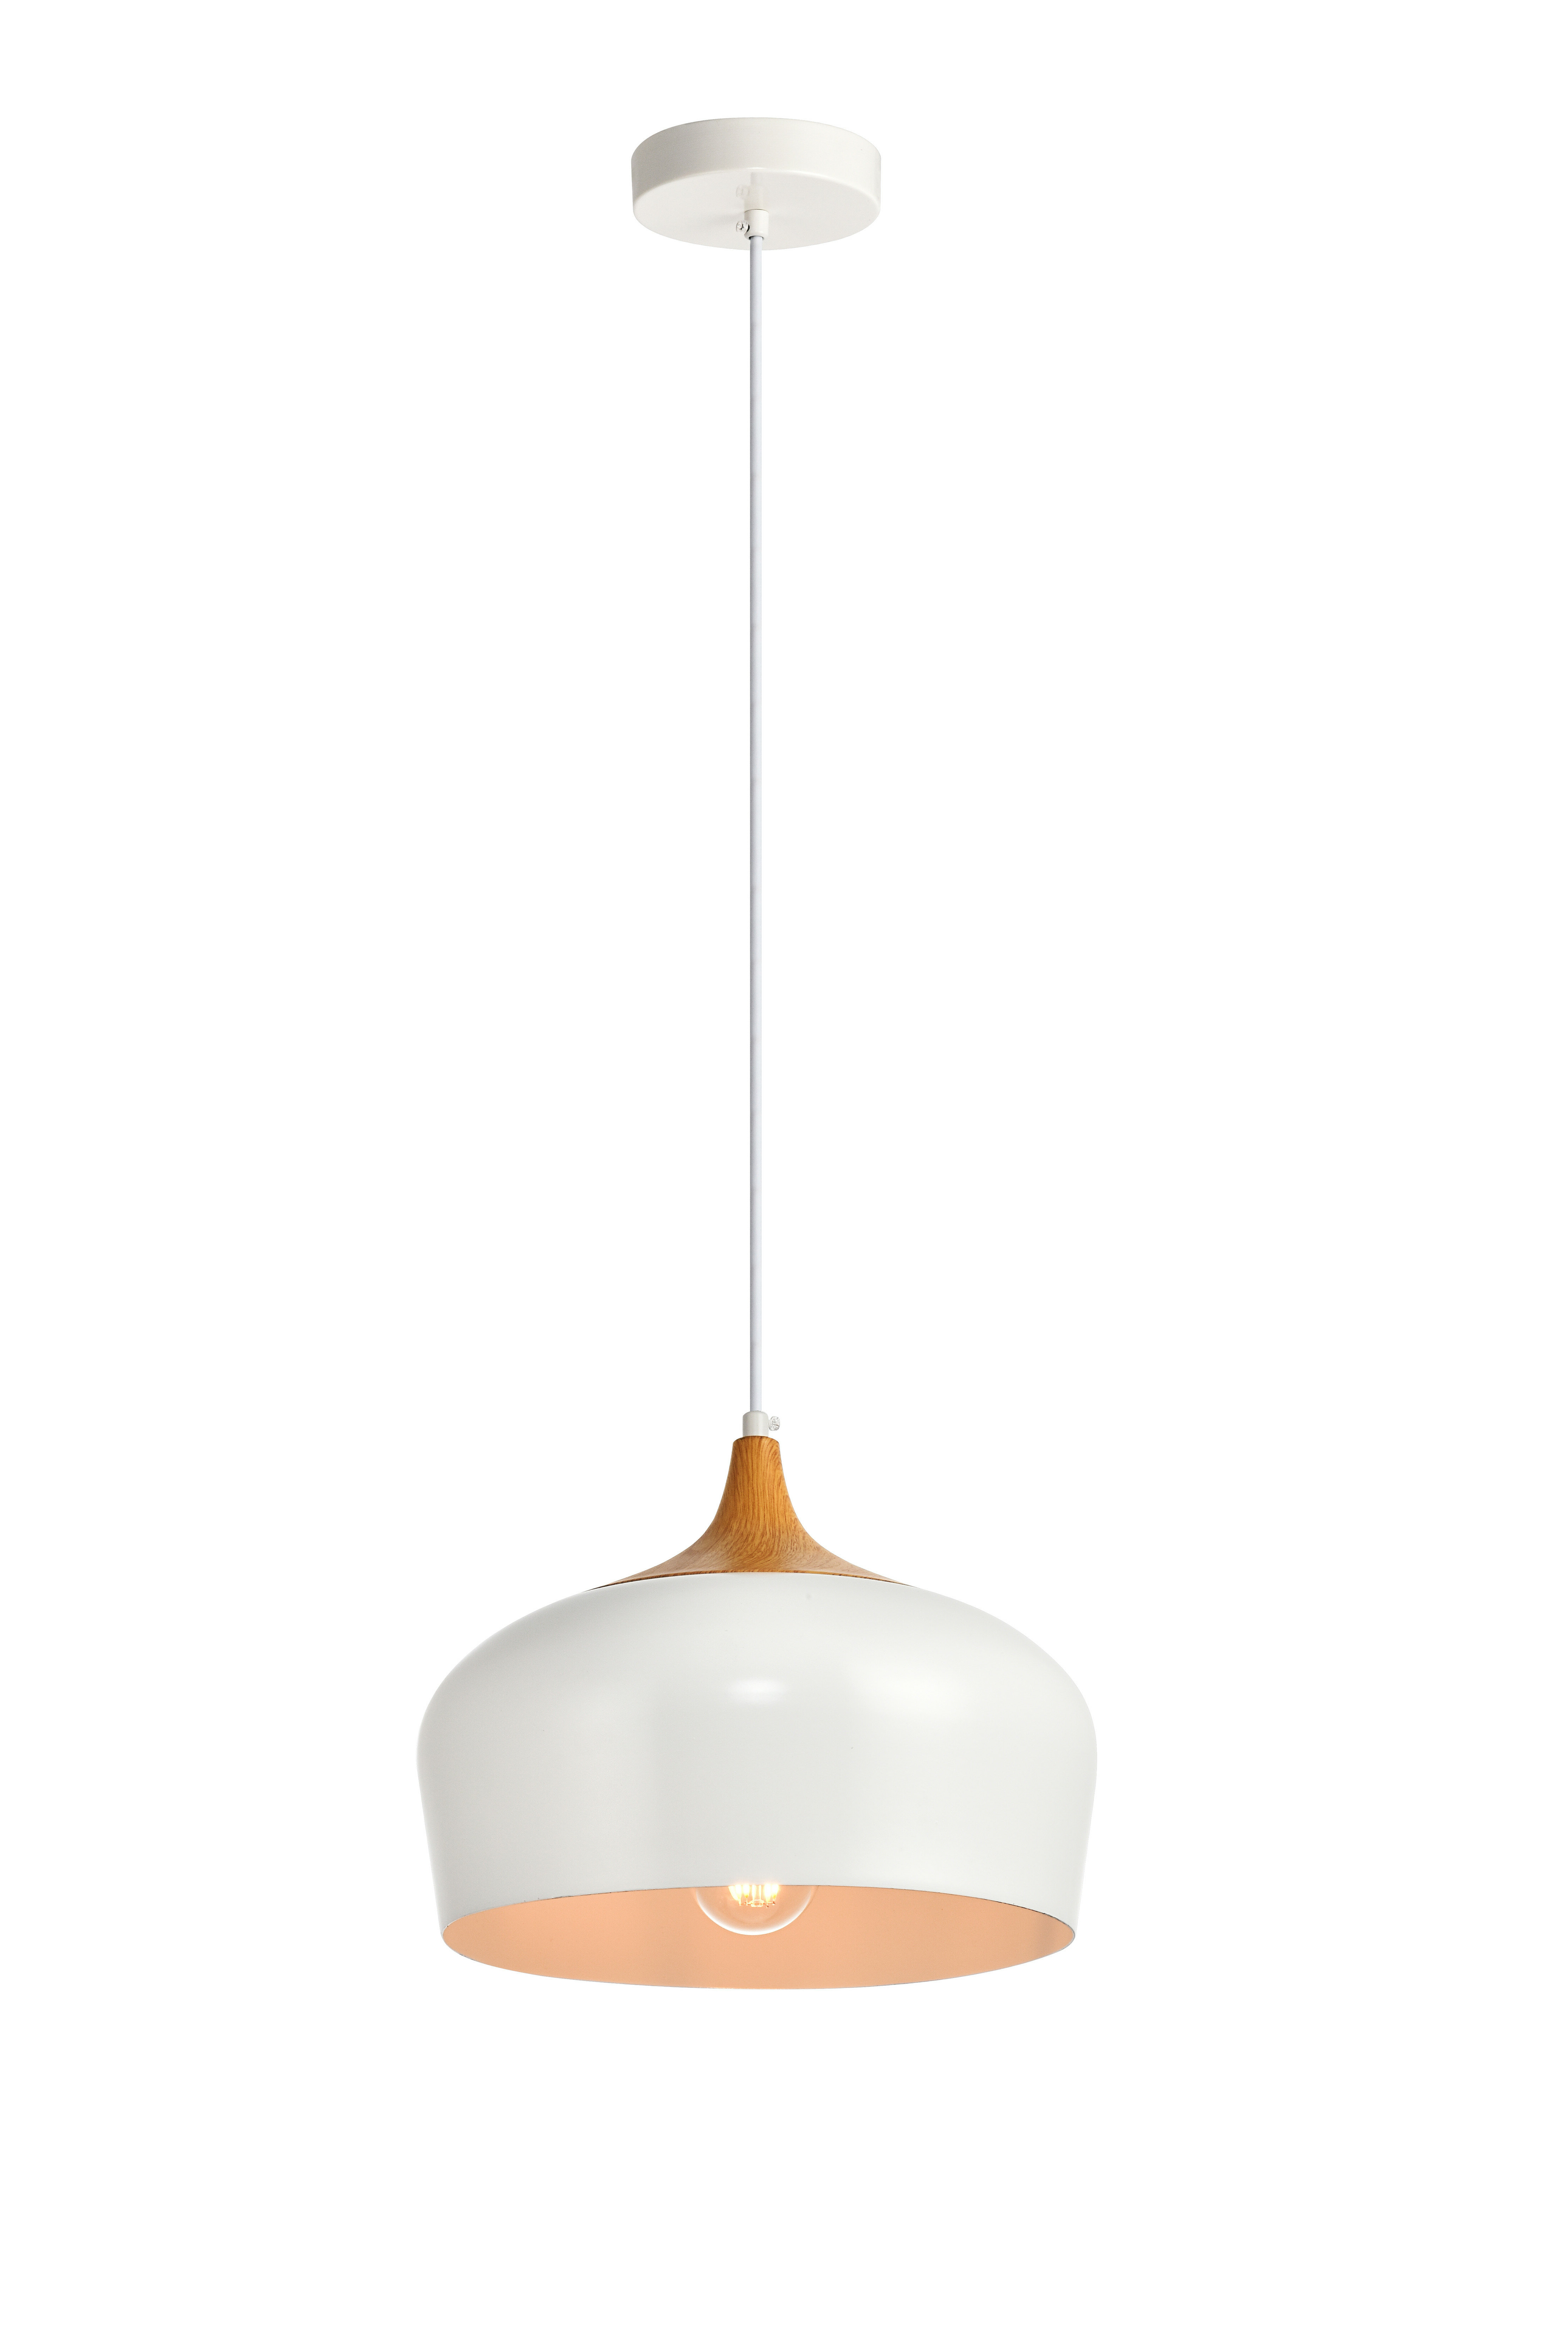 Fashionable Single Pendant Lighting You'll Love In  (View 12 of 25)